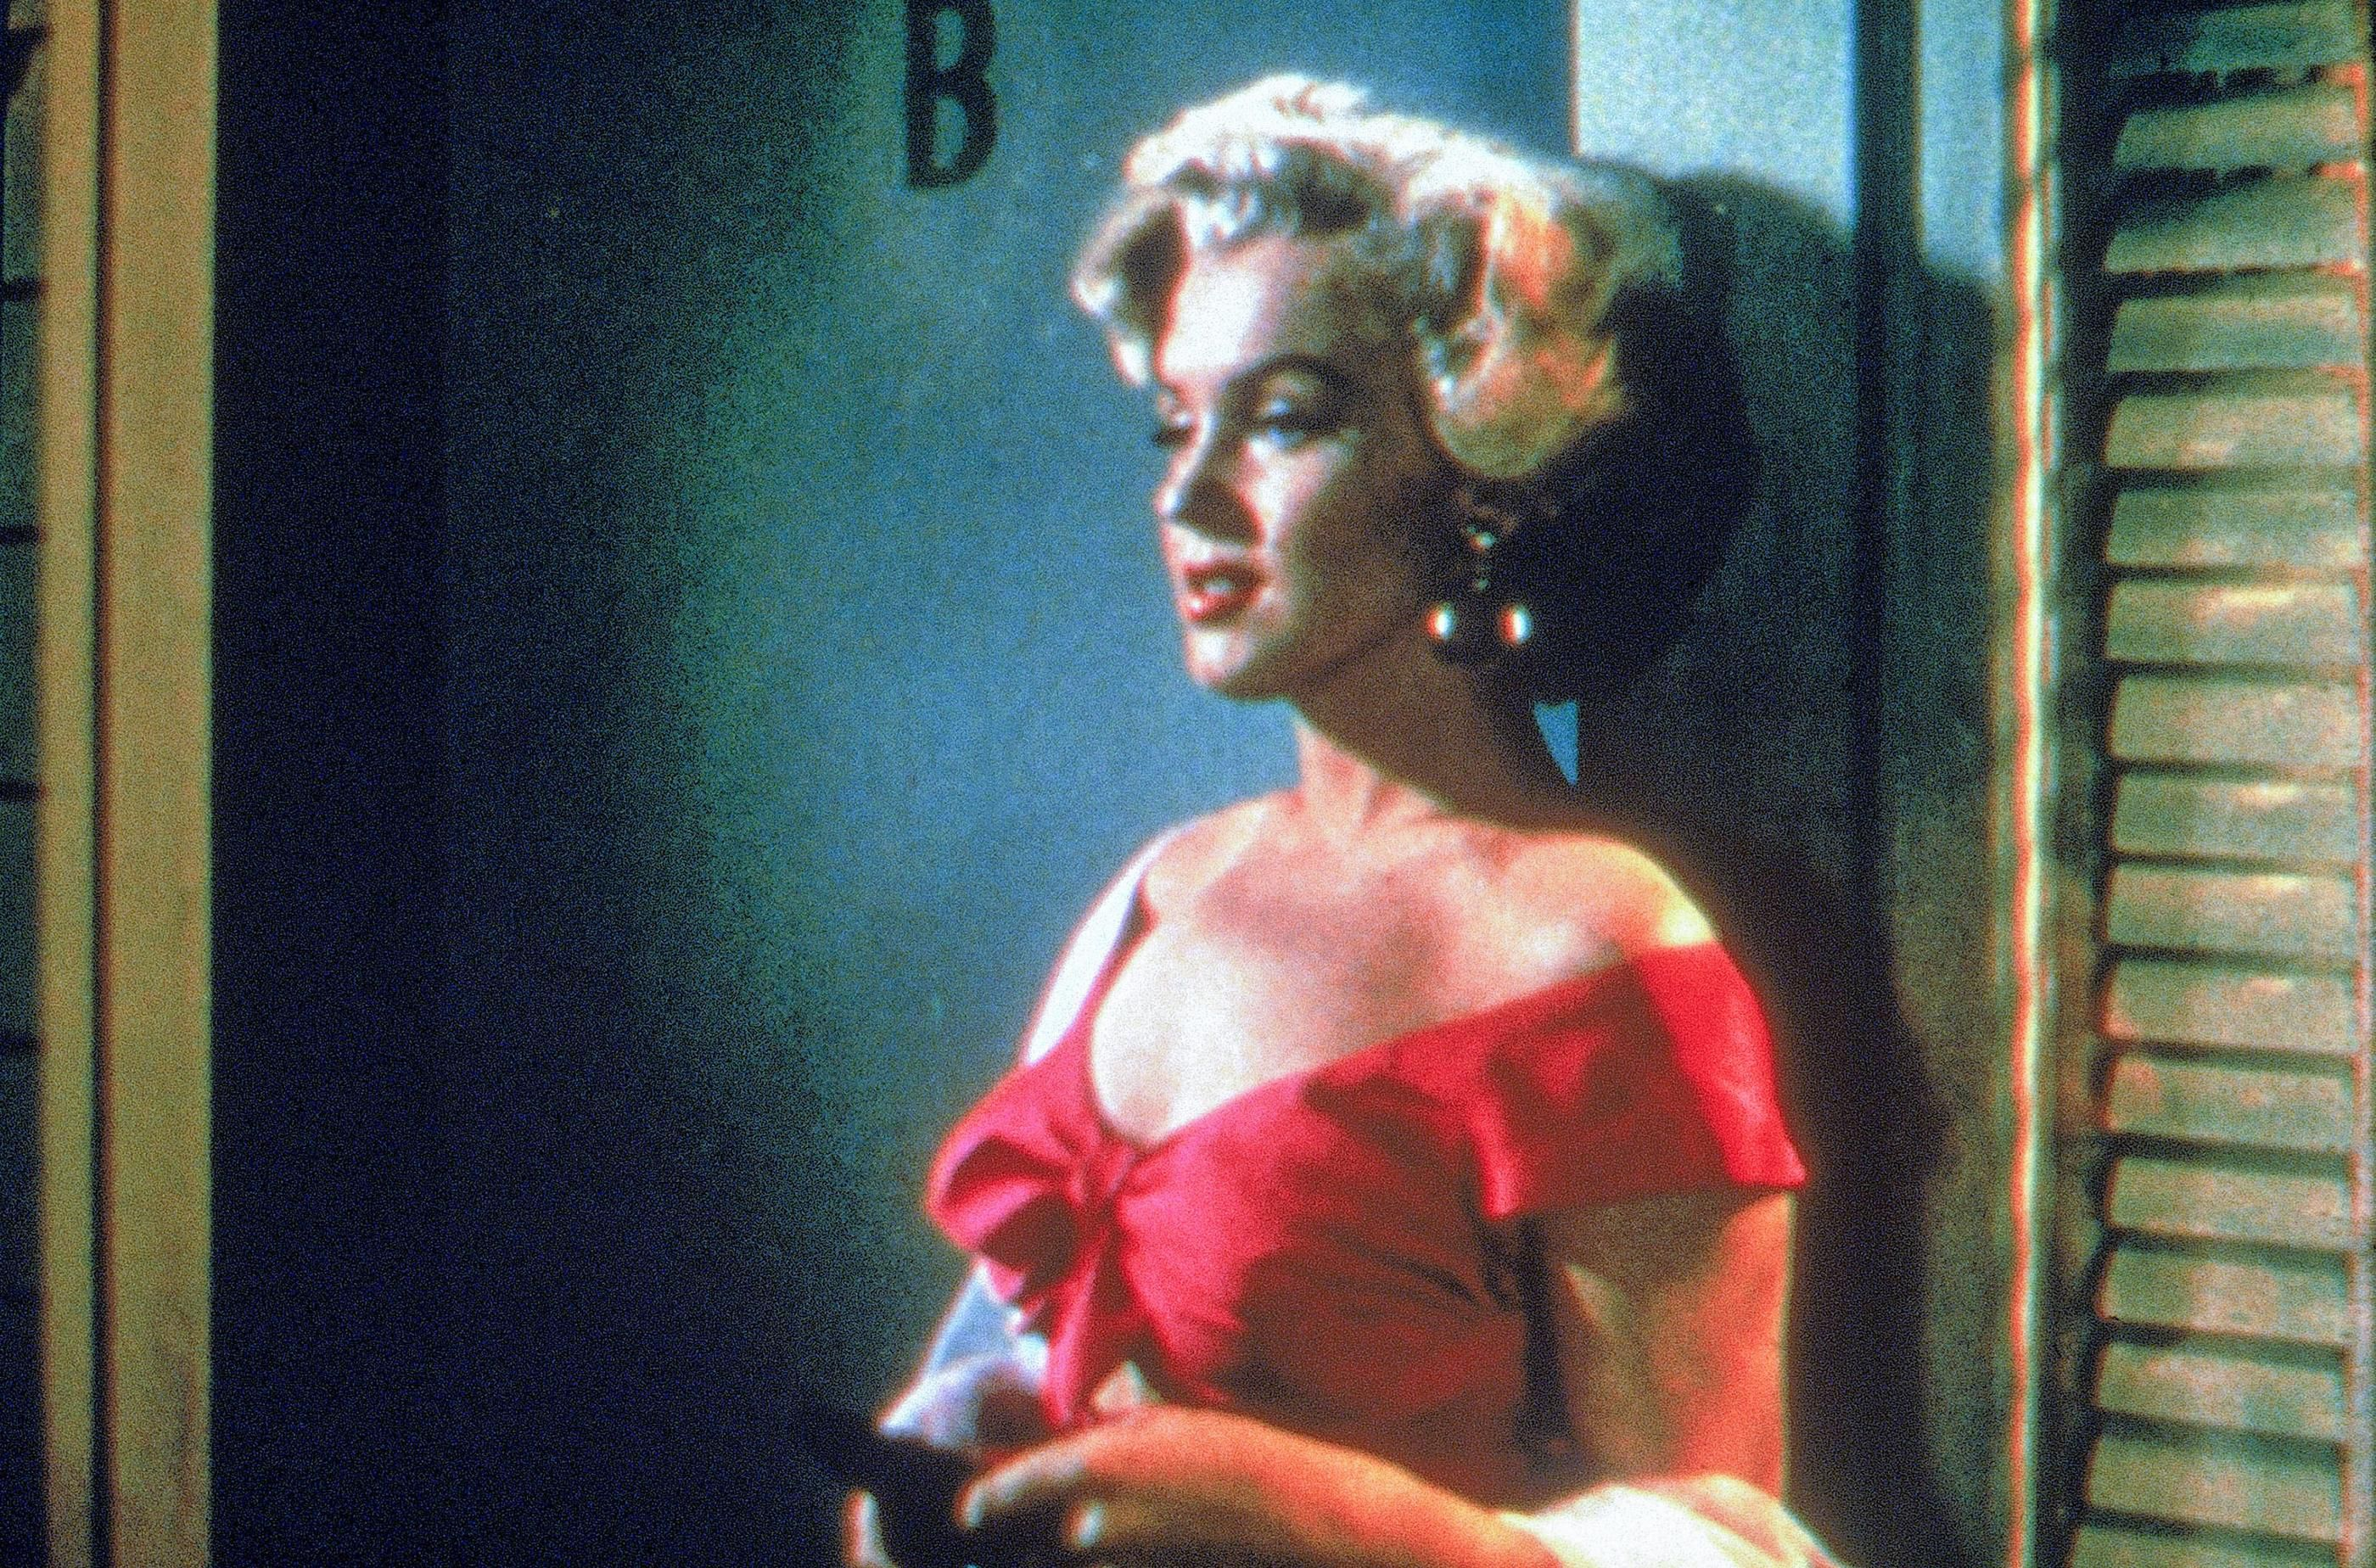 Marilyn plays a curious woman named Monroe Rose, who gets caught in her own web.